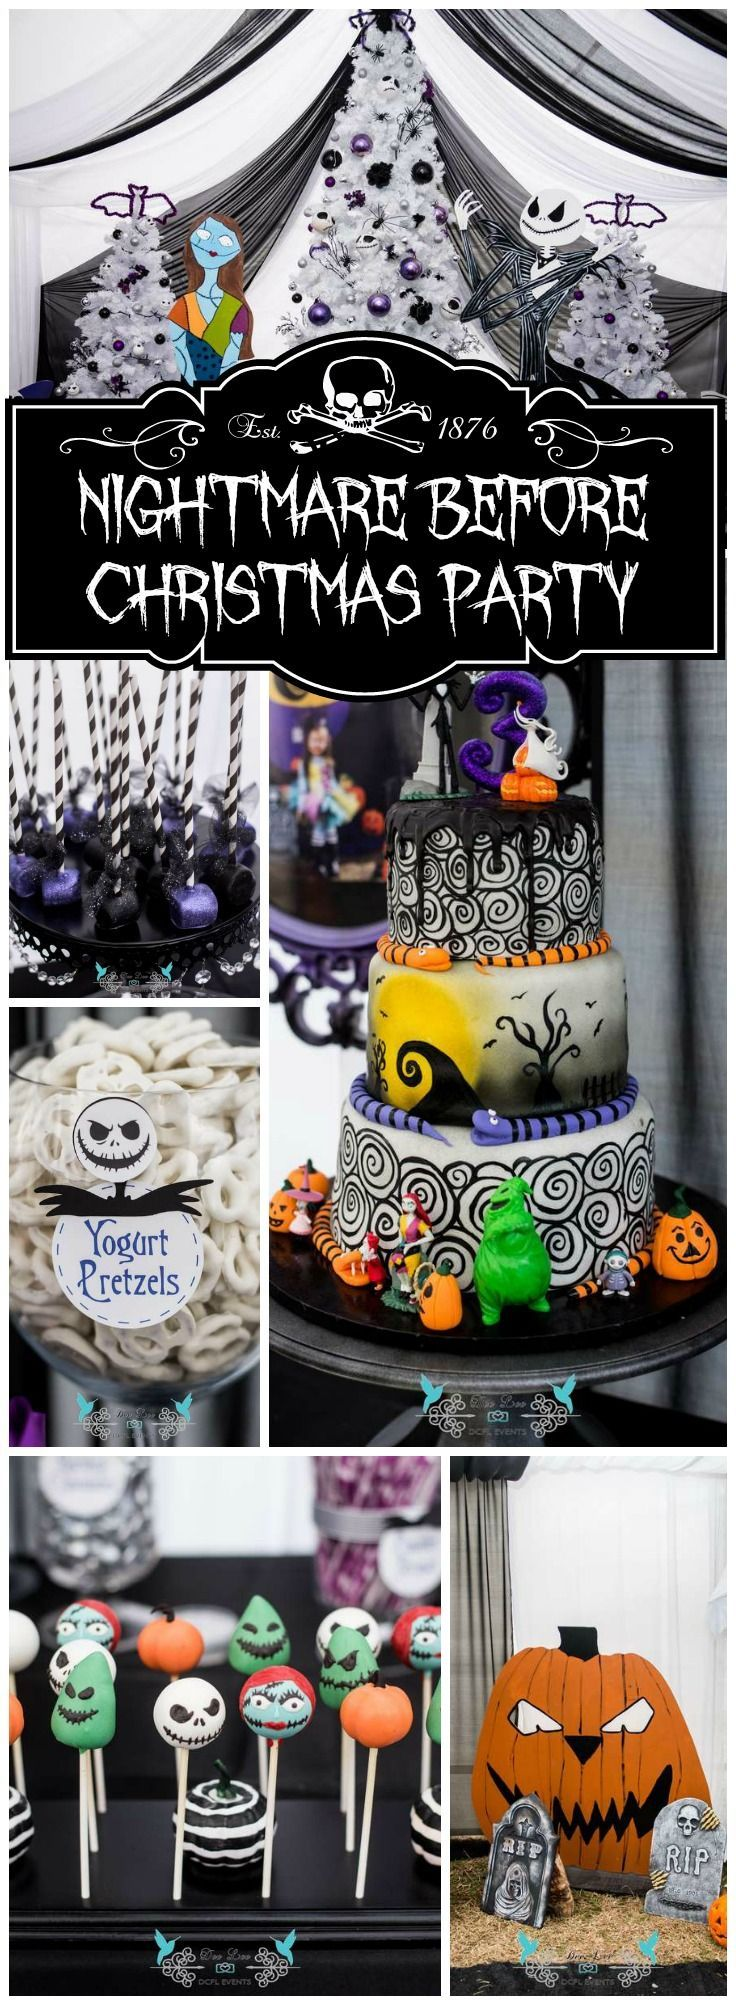 145 best images about Halloween on Pinterest | Halloween party ...